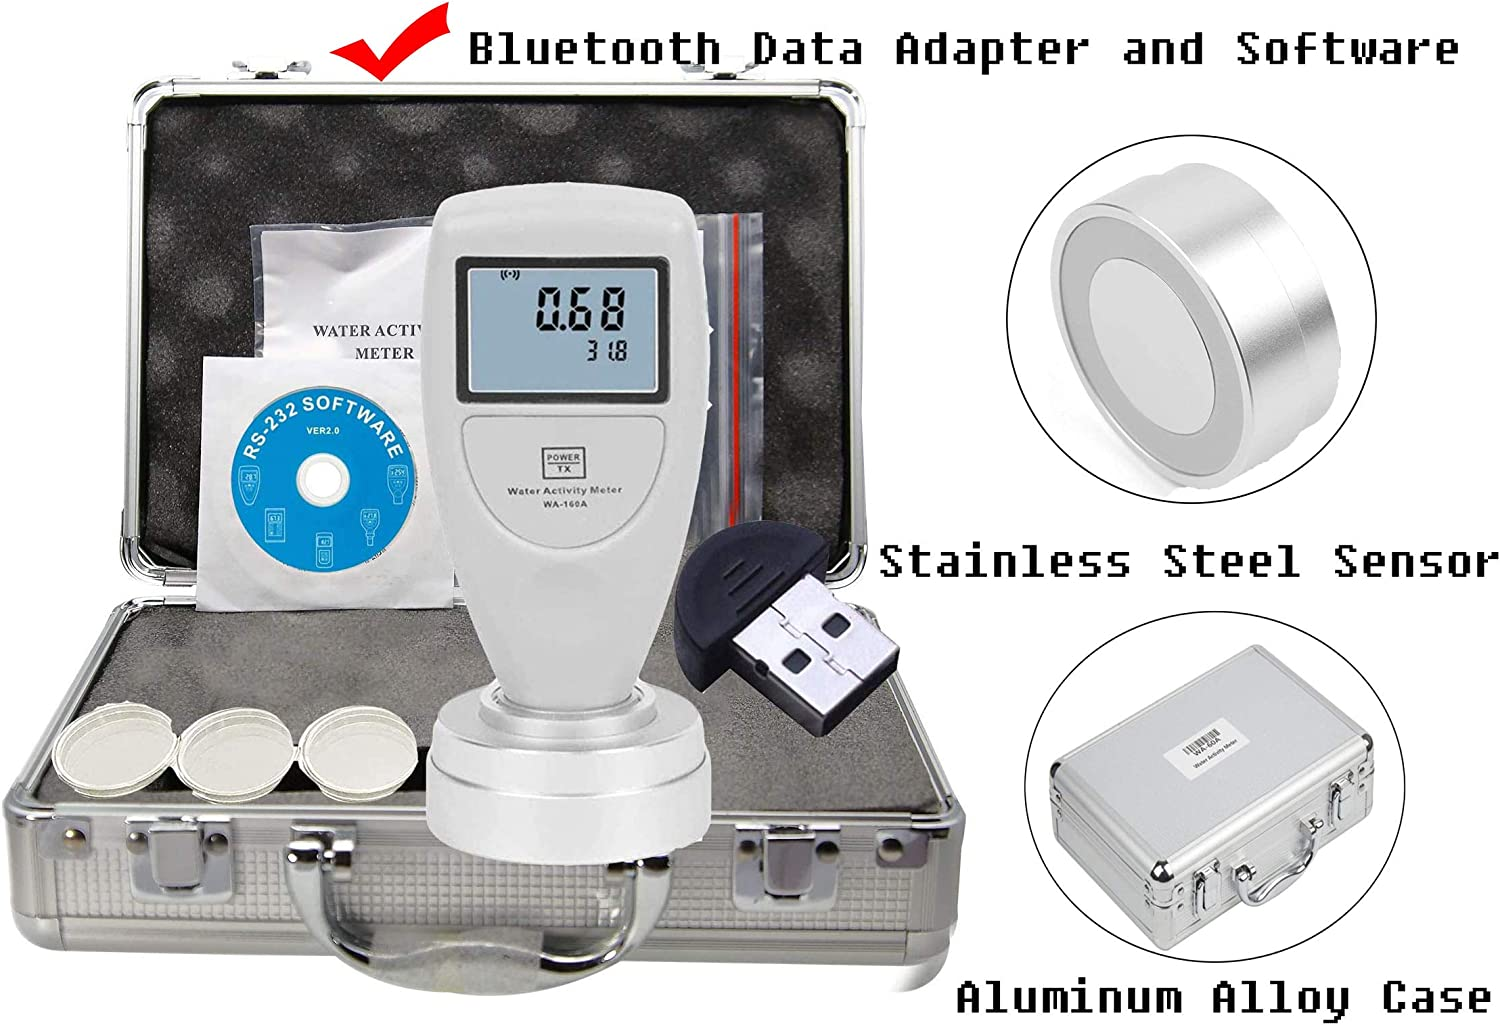 HFBTE WA-160A Food Water Activity Meter Monitor Tester with Bluetooth Data Adapter and Software Receive Signals Within 10 Meters